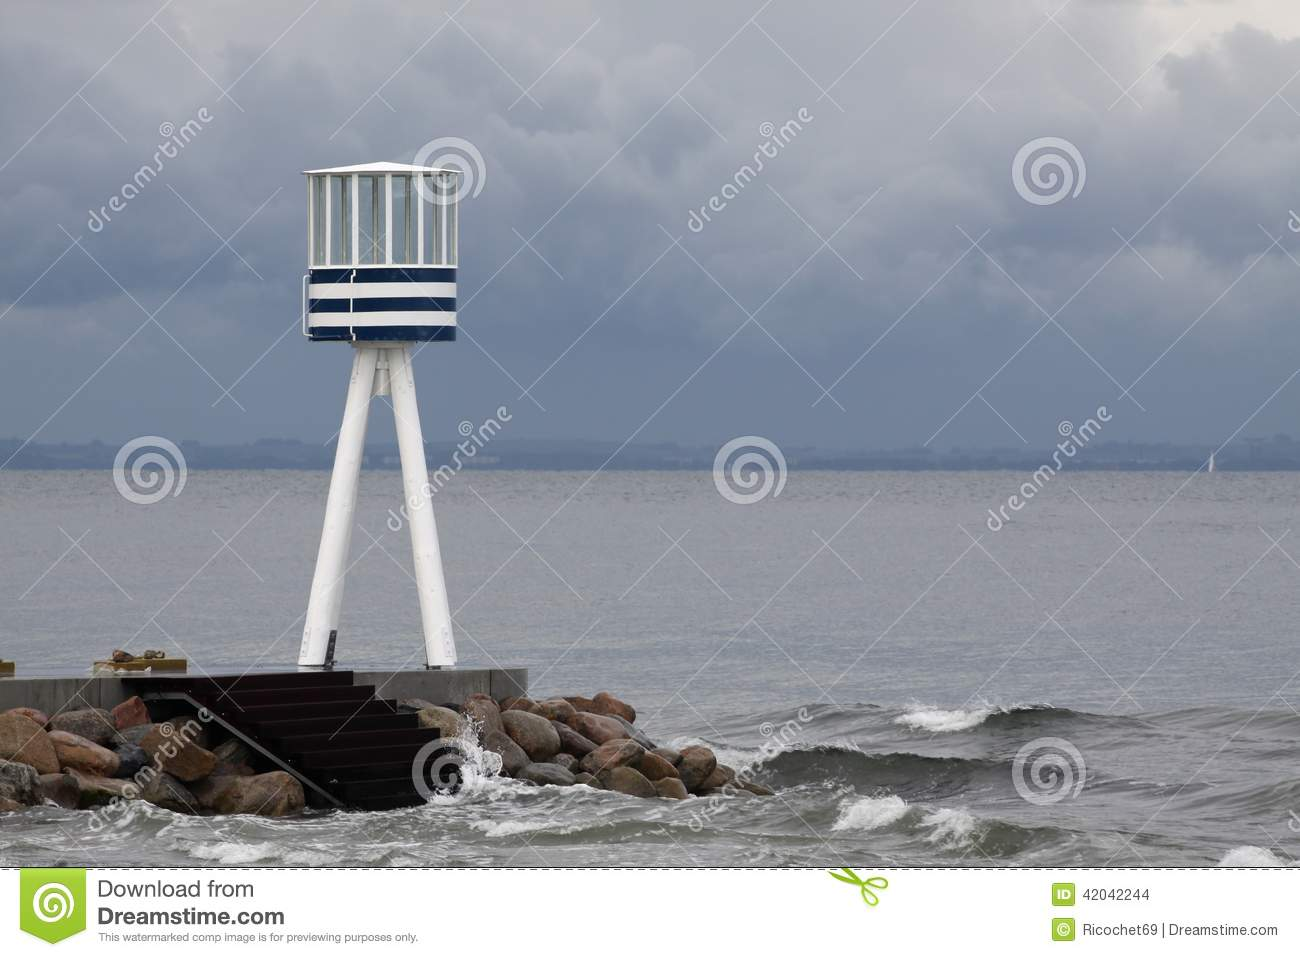 Bellevue Beach Lifeguard Tower Stock Photo Image 42042244